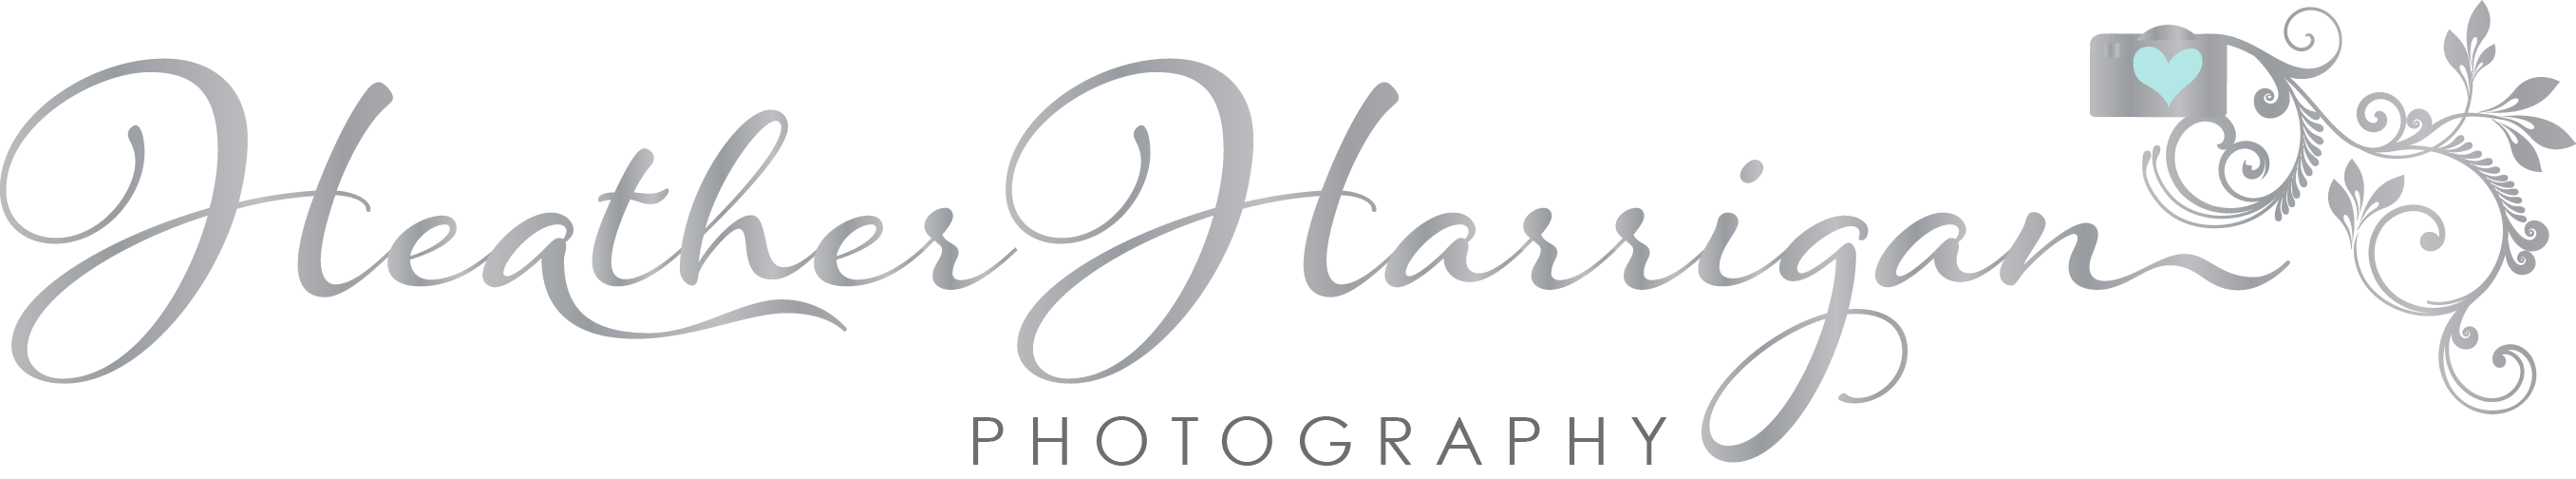 Heather Harrigan Photography